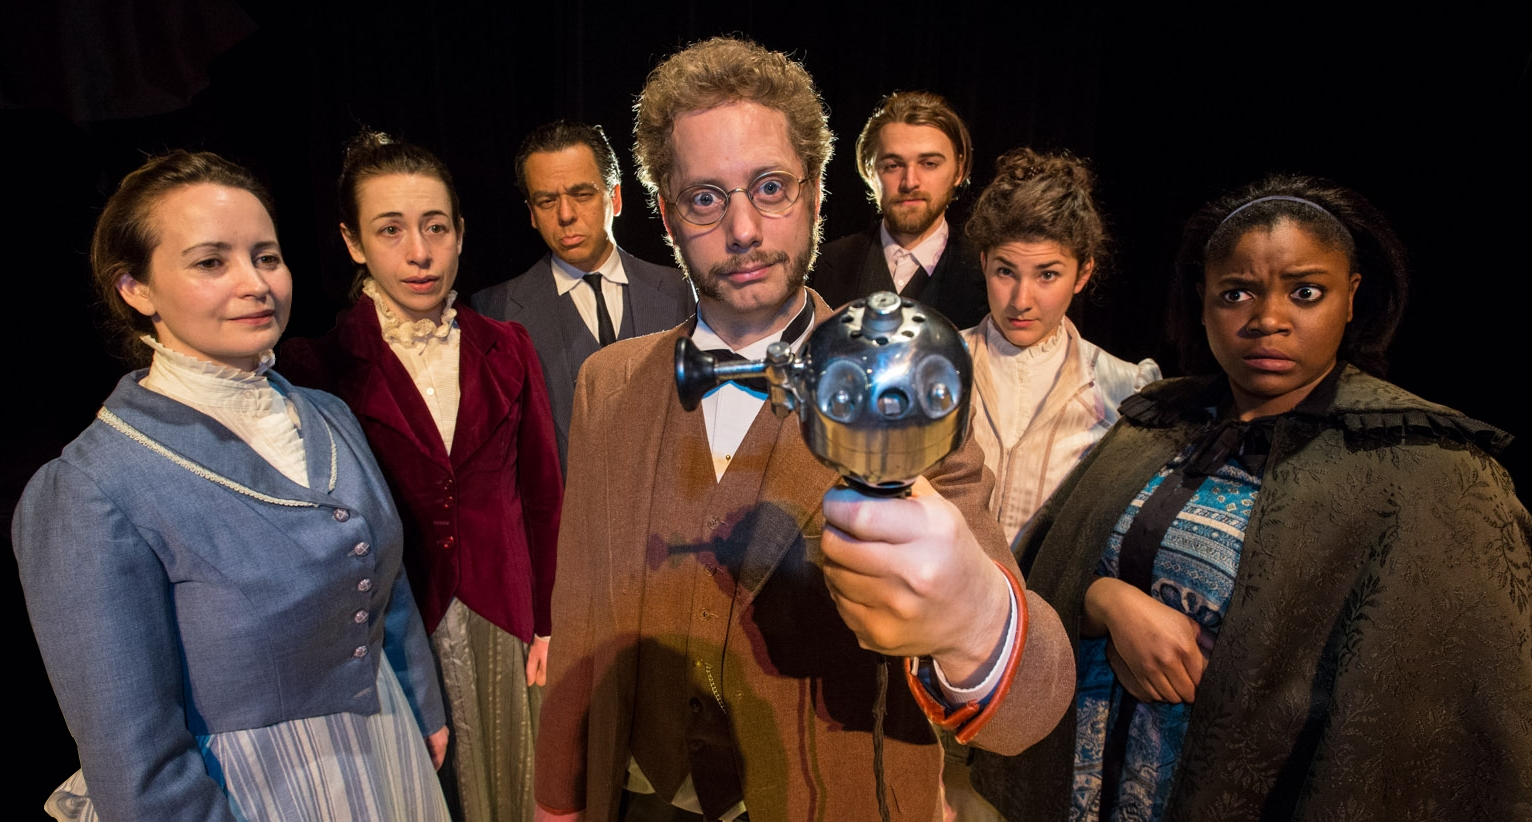 Cast, from left: Annie (Michelle LeBlanc), Mrs. Daldry (Sarah Finn), Mr. Daldry (David Frisch), Dr. Givings (David Whiteley), Leo Irving (Robin Toller), Mrs. Givings (Sascha Cole) and Elizabeth (Dilys Ayafor).  Photography by A. Alexander